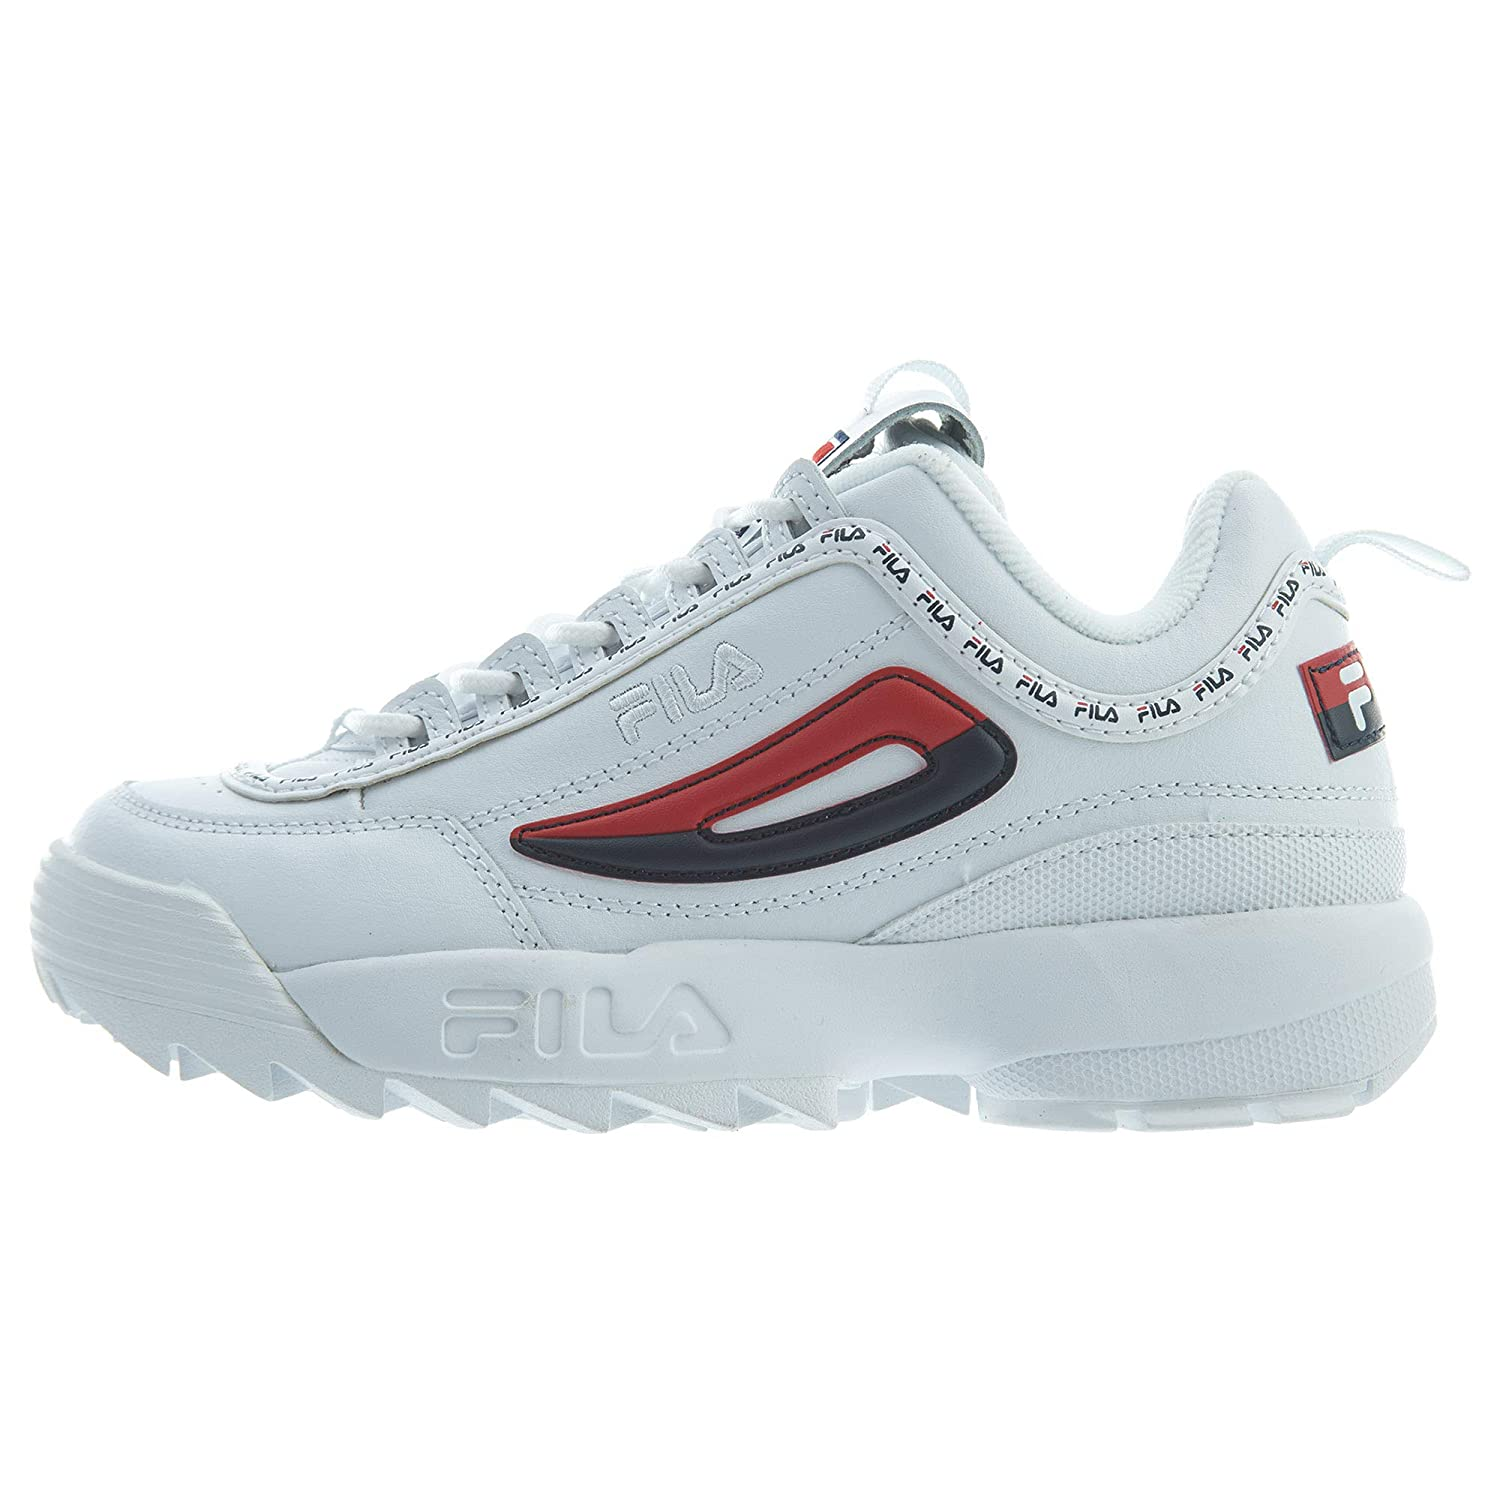 46c157edc2c7 Fila Disruptor 2 Premium Repeat White Navy Red (Womens)  Amazon.ca  Shoes    Handbags